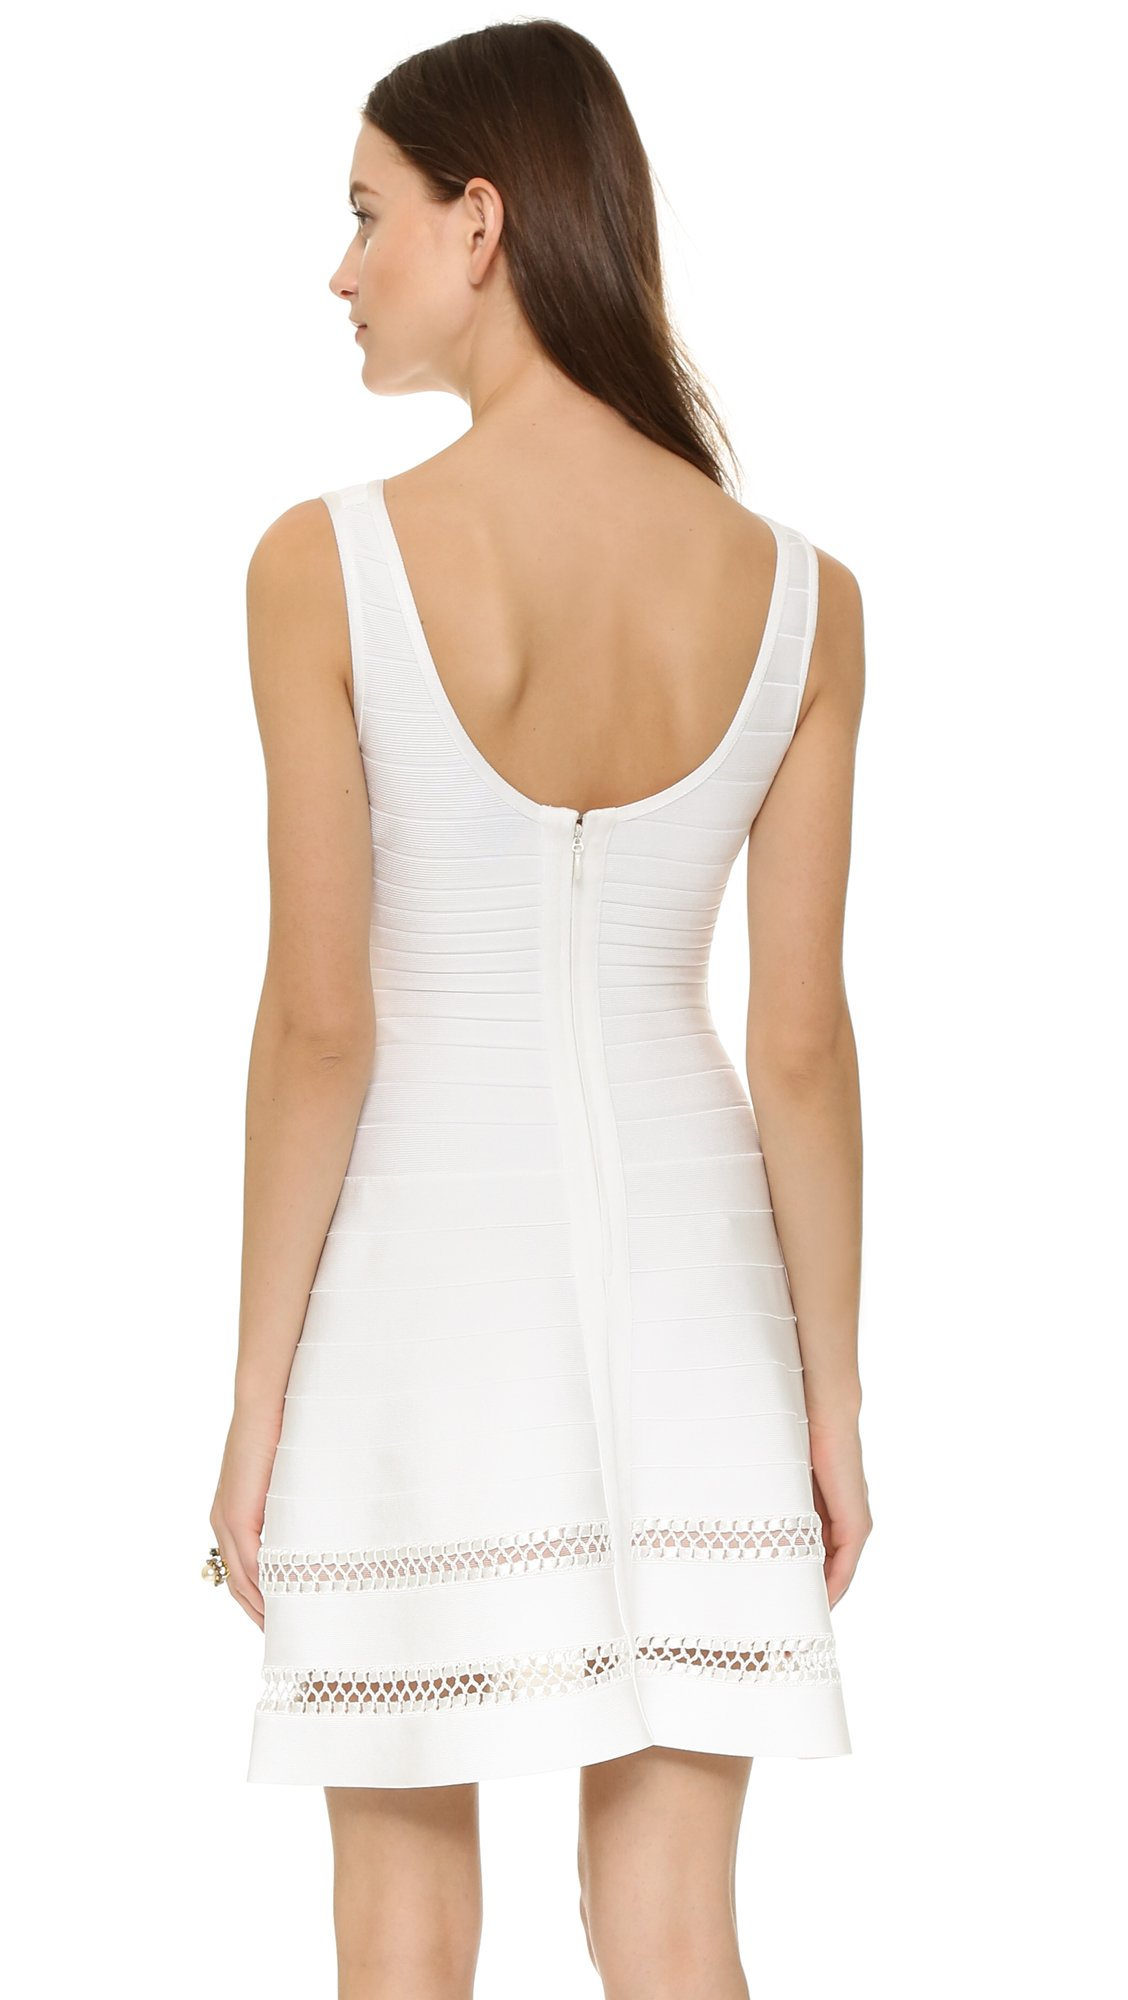 how to clean a herve leger dress